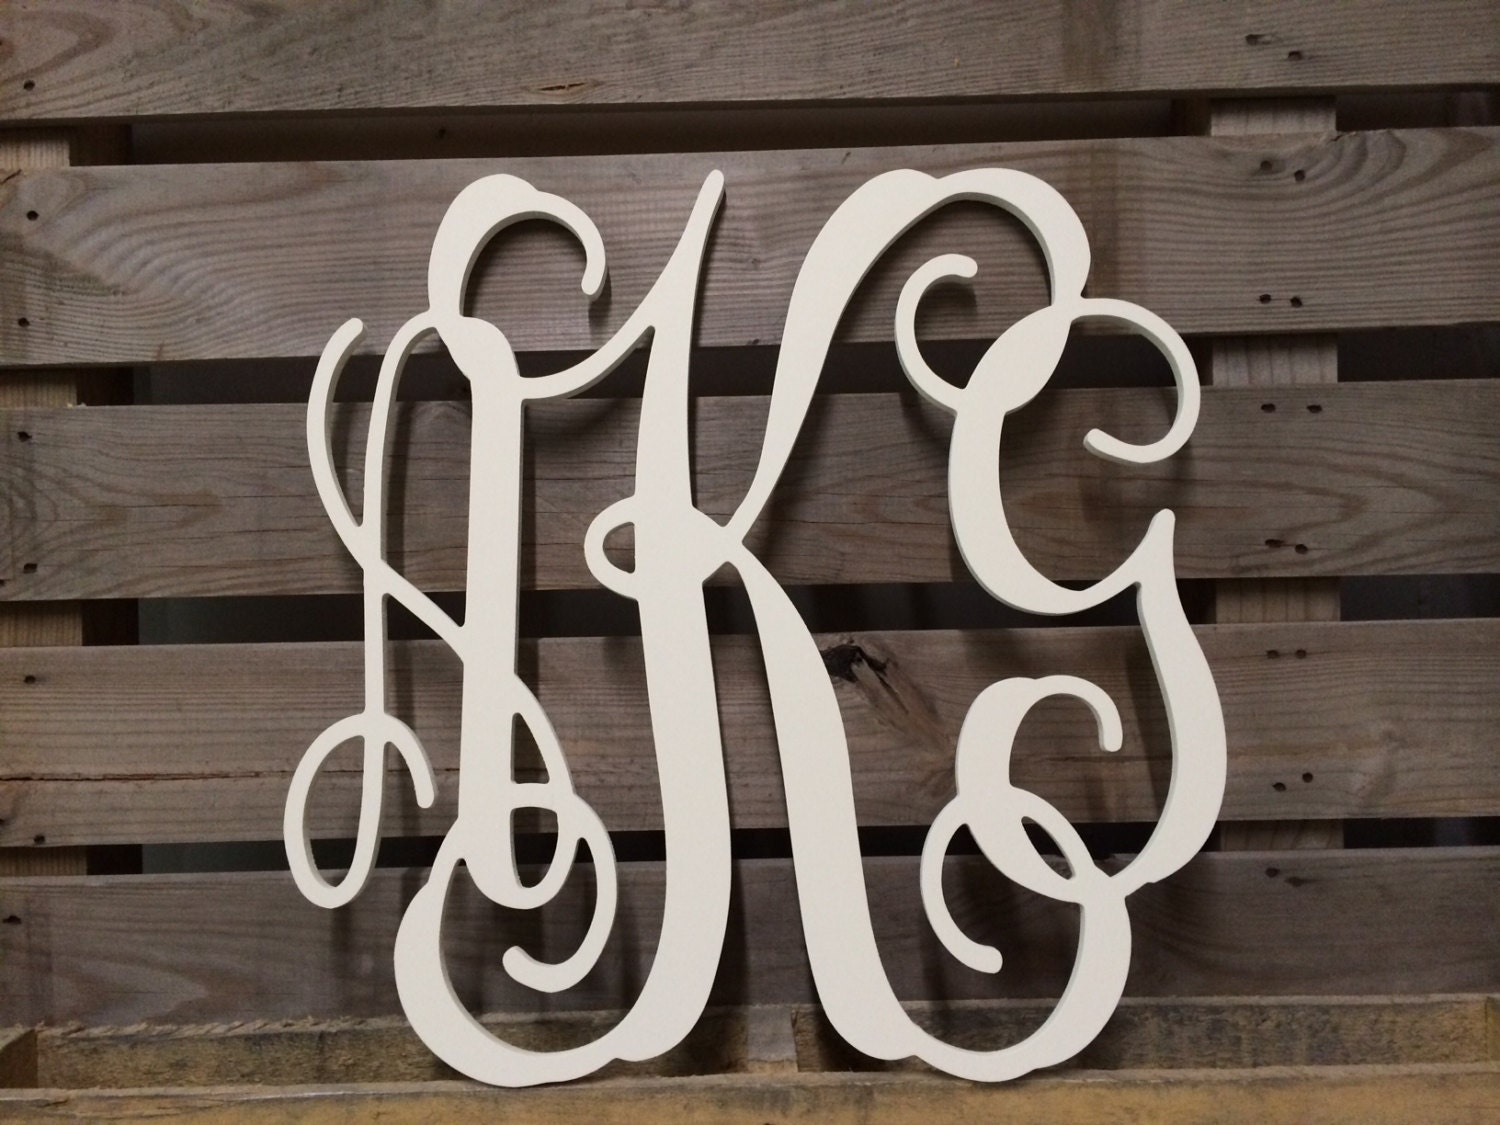 painted monogram extra large wall letters 30 cursive wooden letters wedding guest bookwedding decor 3 letters keyhole slots on back